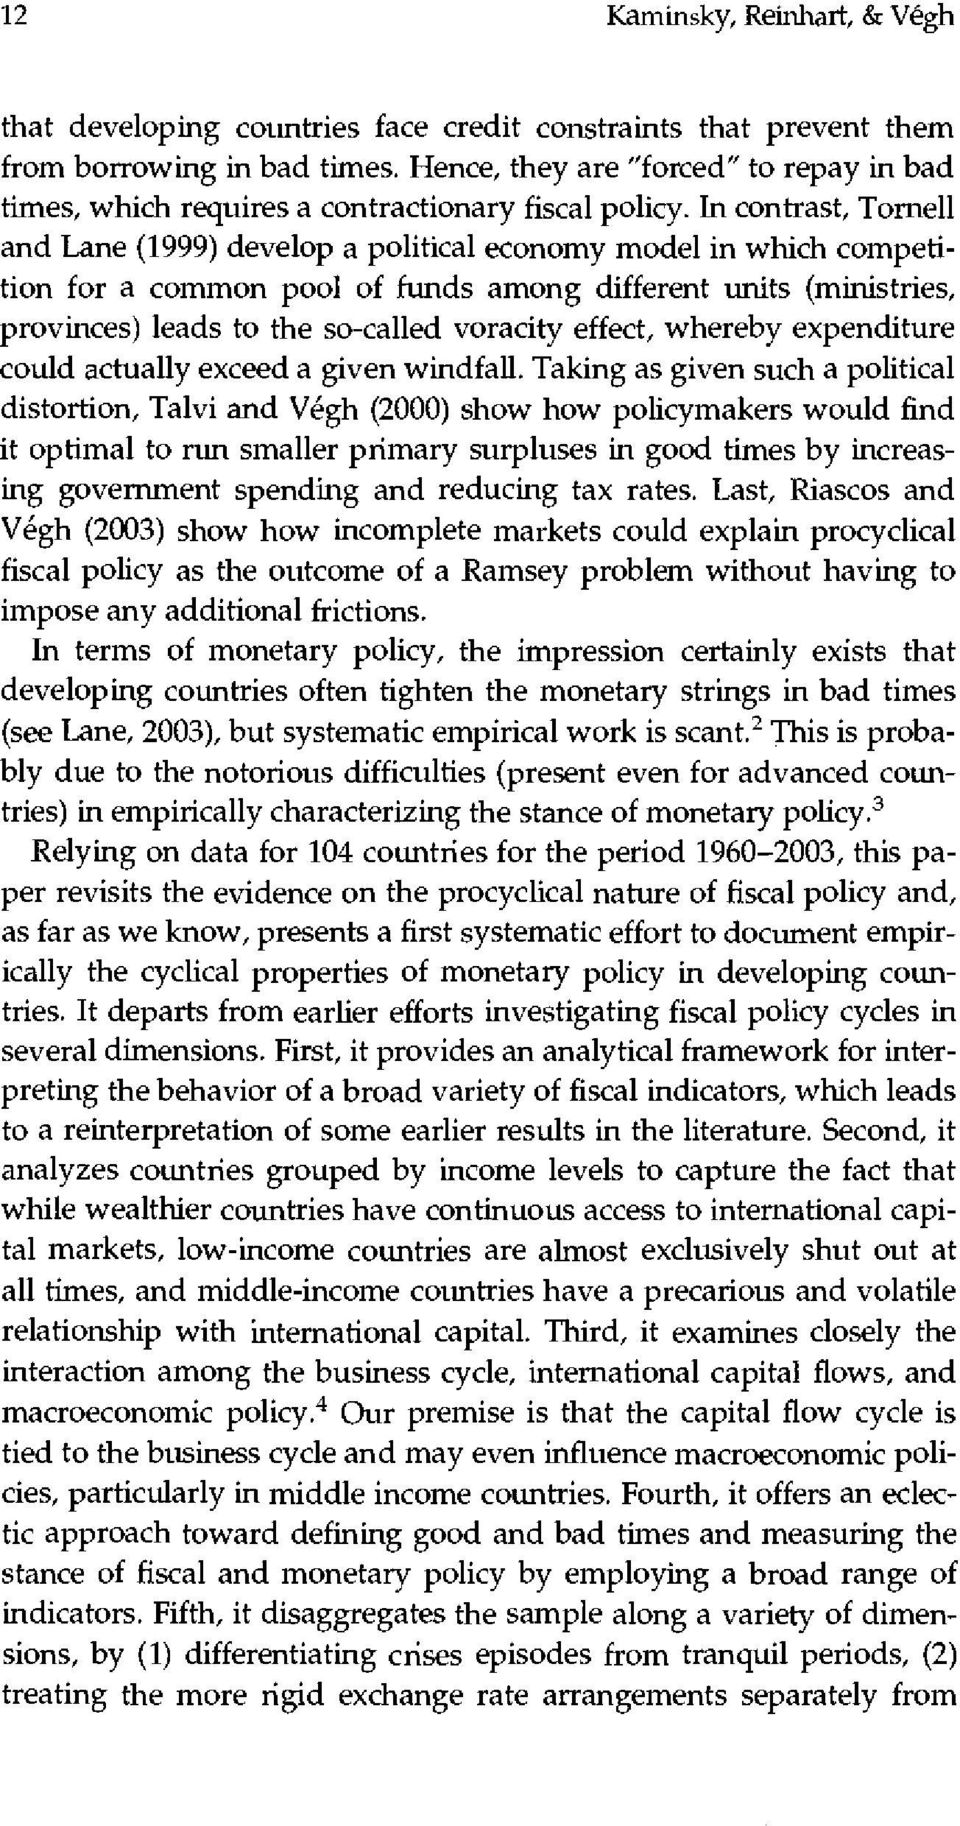 In contrast, Tornell and Lane (1999) develop a political economy model in which competition for a common pool of funds among different units (ministries, provinces) leads to the so-called voracity